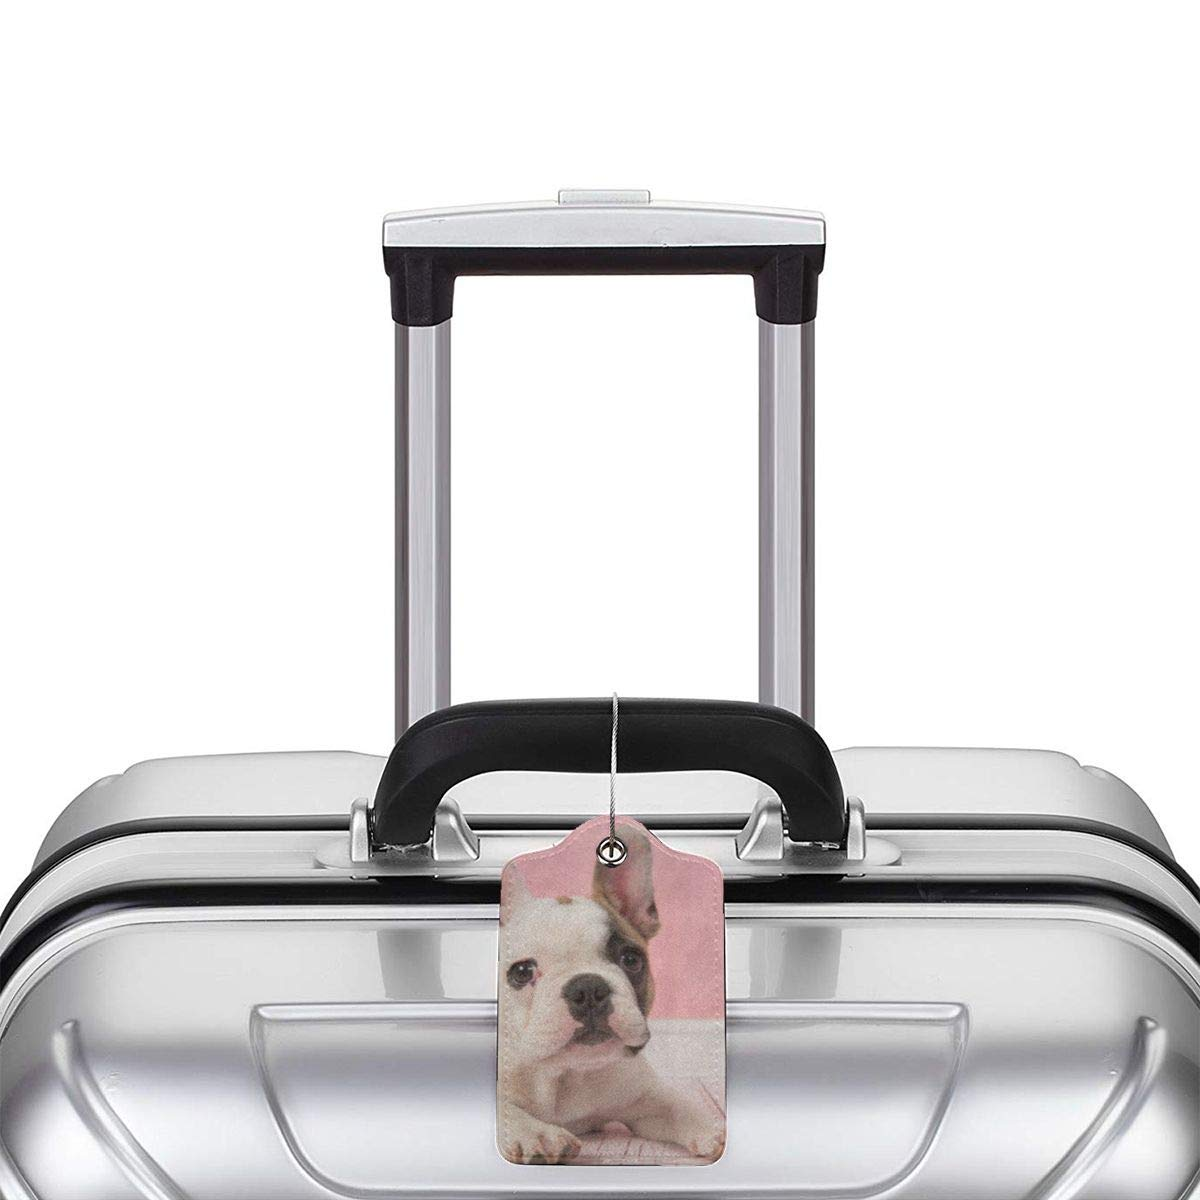 French Bulldog2 Leather Luggage Tags Personalized Travel Accessories With Privacy Flap